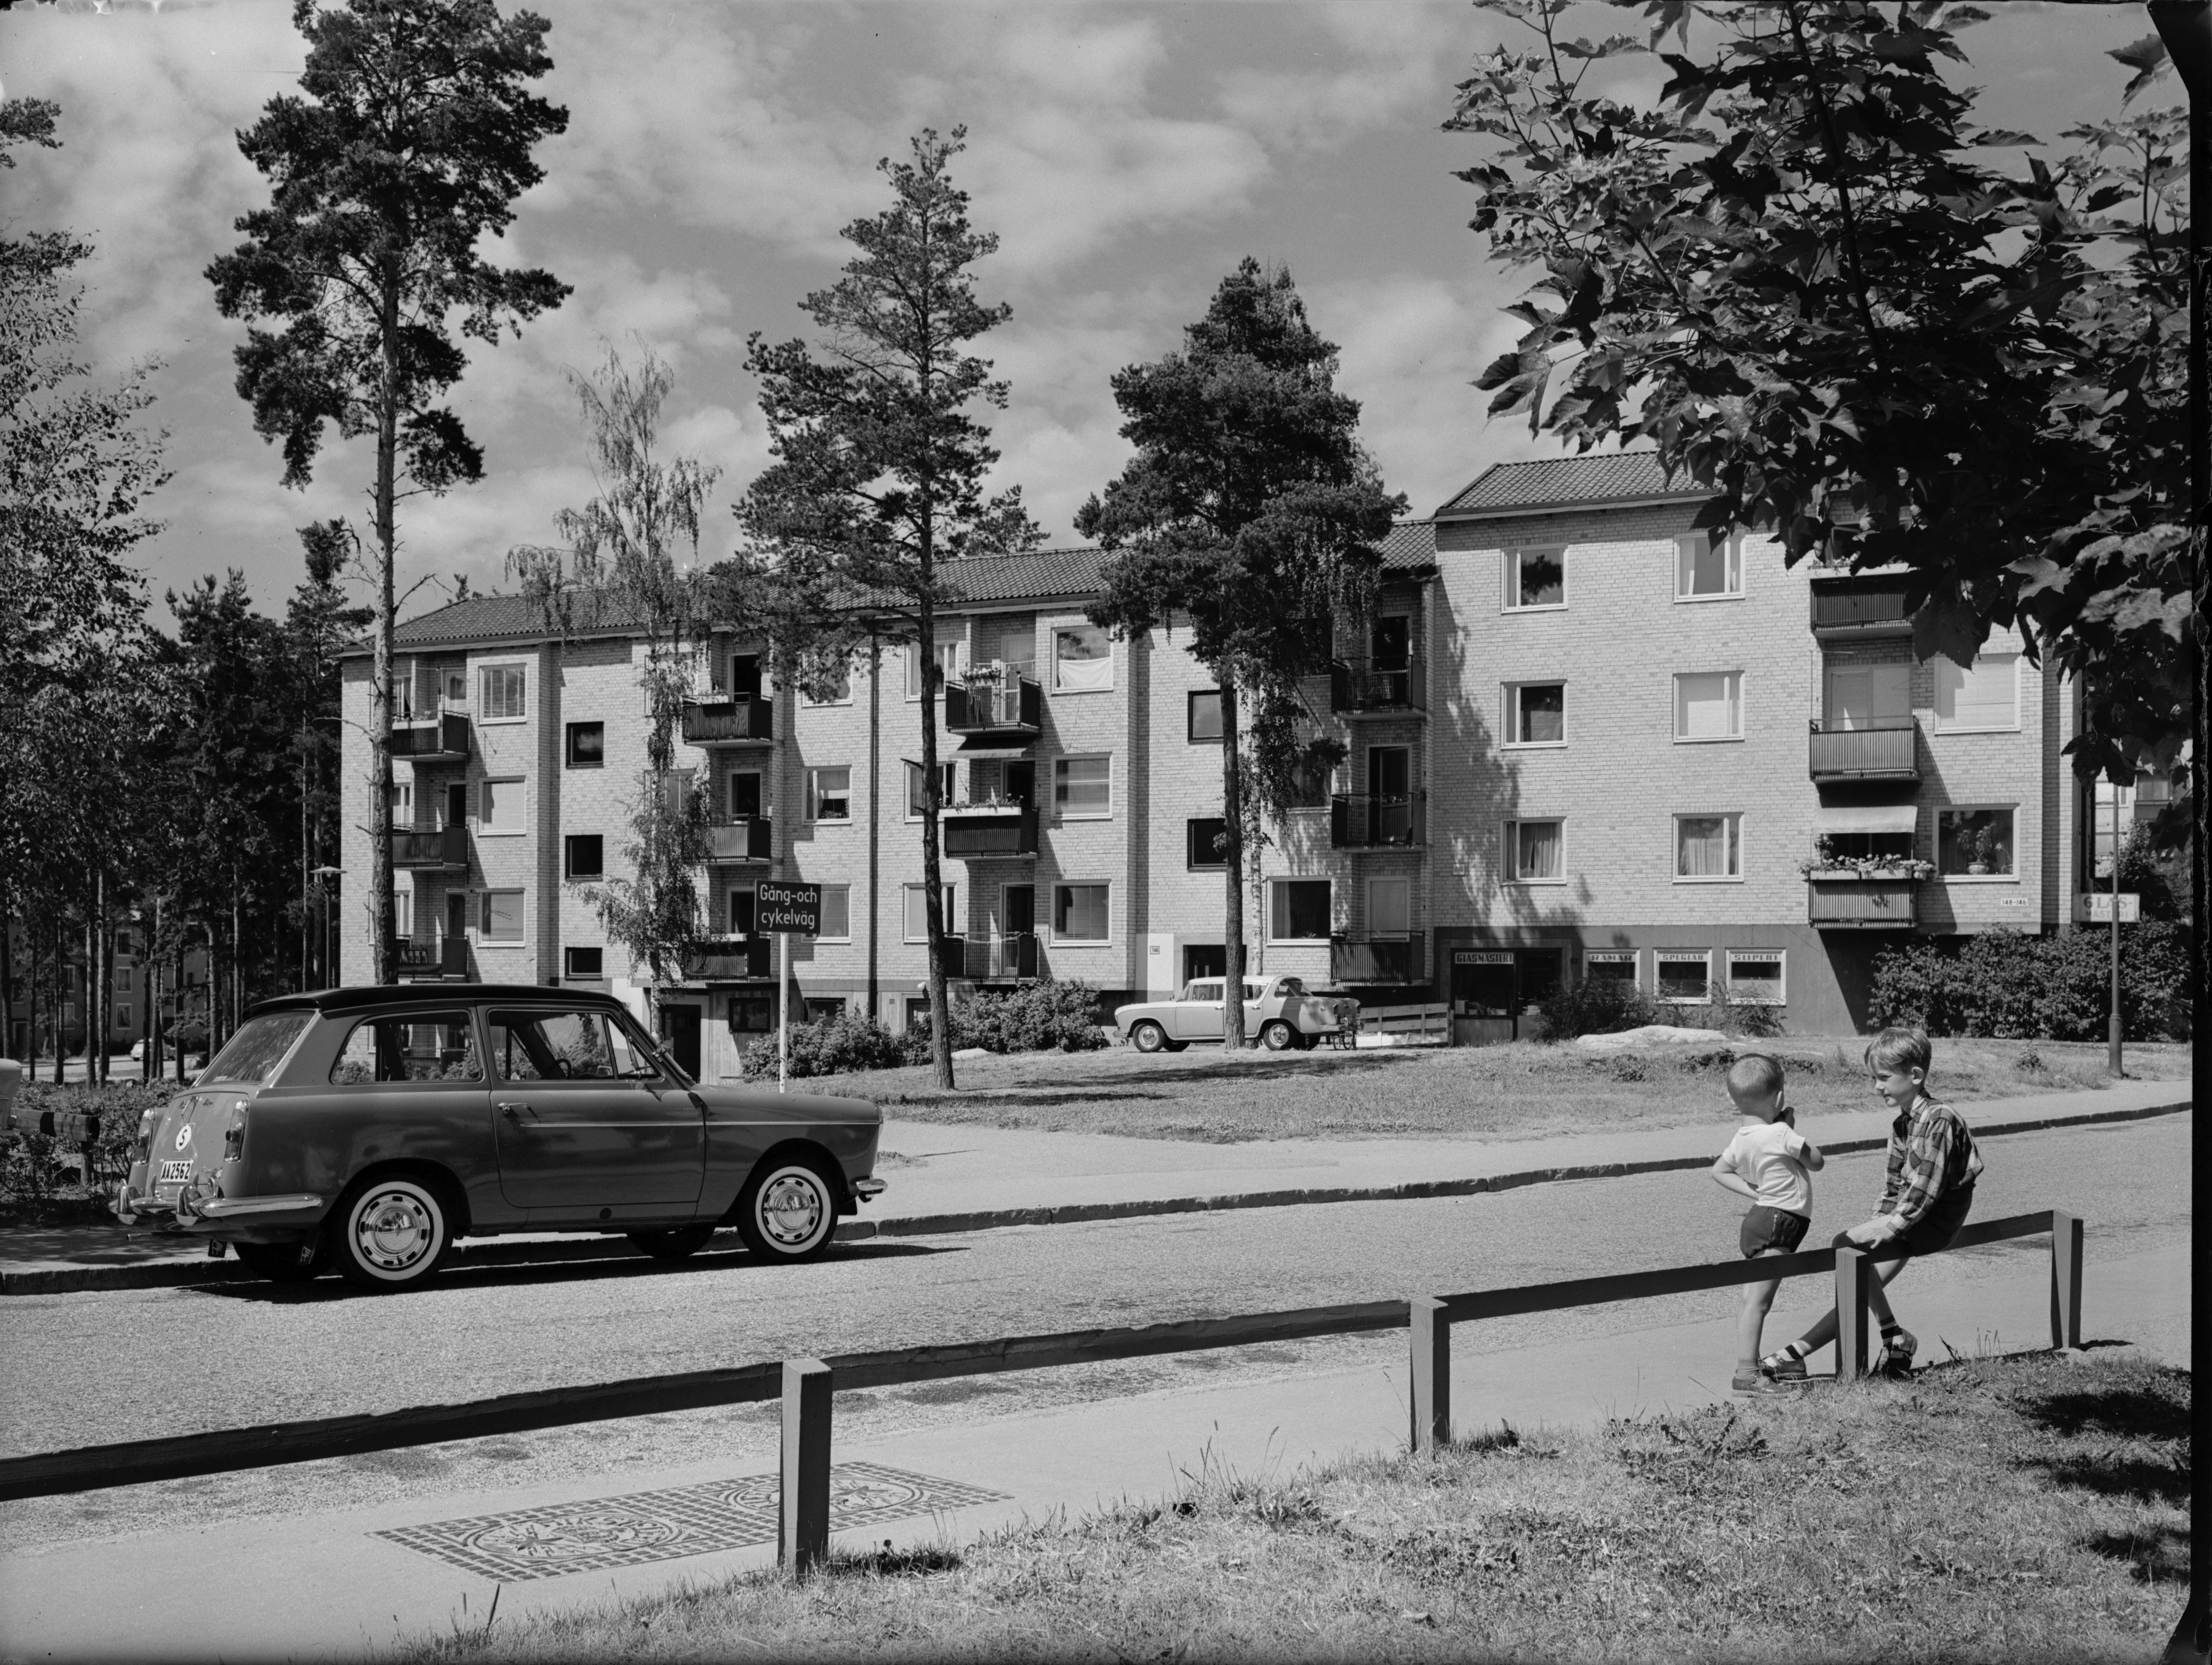 Blackeberg, Bostadshus, 1959